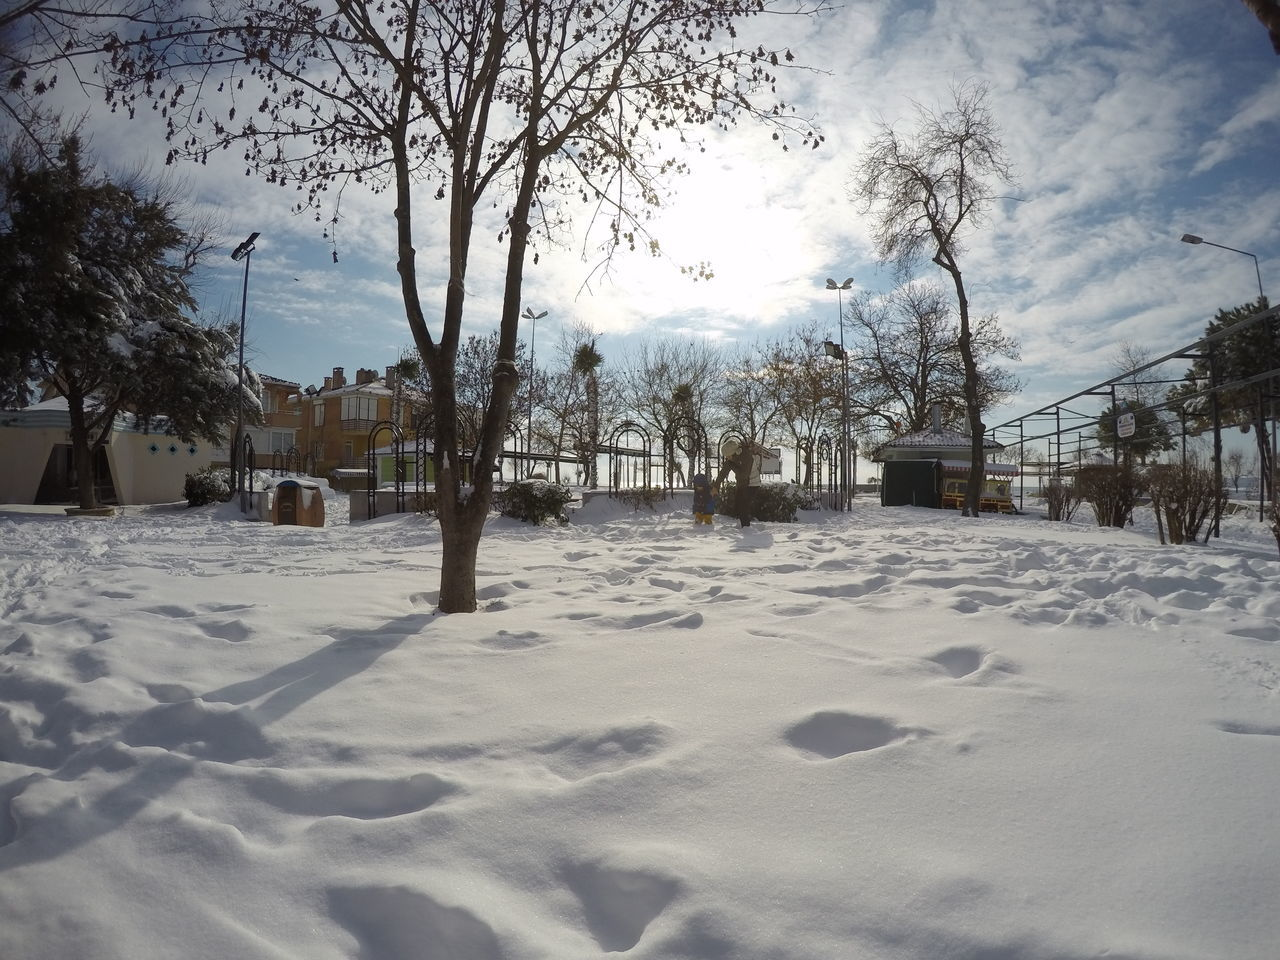 Beauty In Nature City Life City Street Cold Temperature Day Gopro GoPrography Goprooftheday Hero4 Hero4black Kid At Playground Kidsphotography Mom And Son Nature Outdoors Playground Sky Snow Snow ❄ Snowball Tree Weather Winter